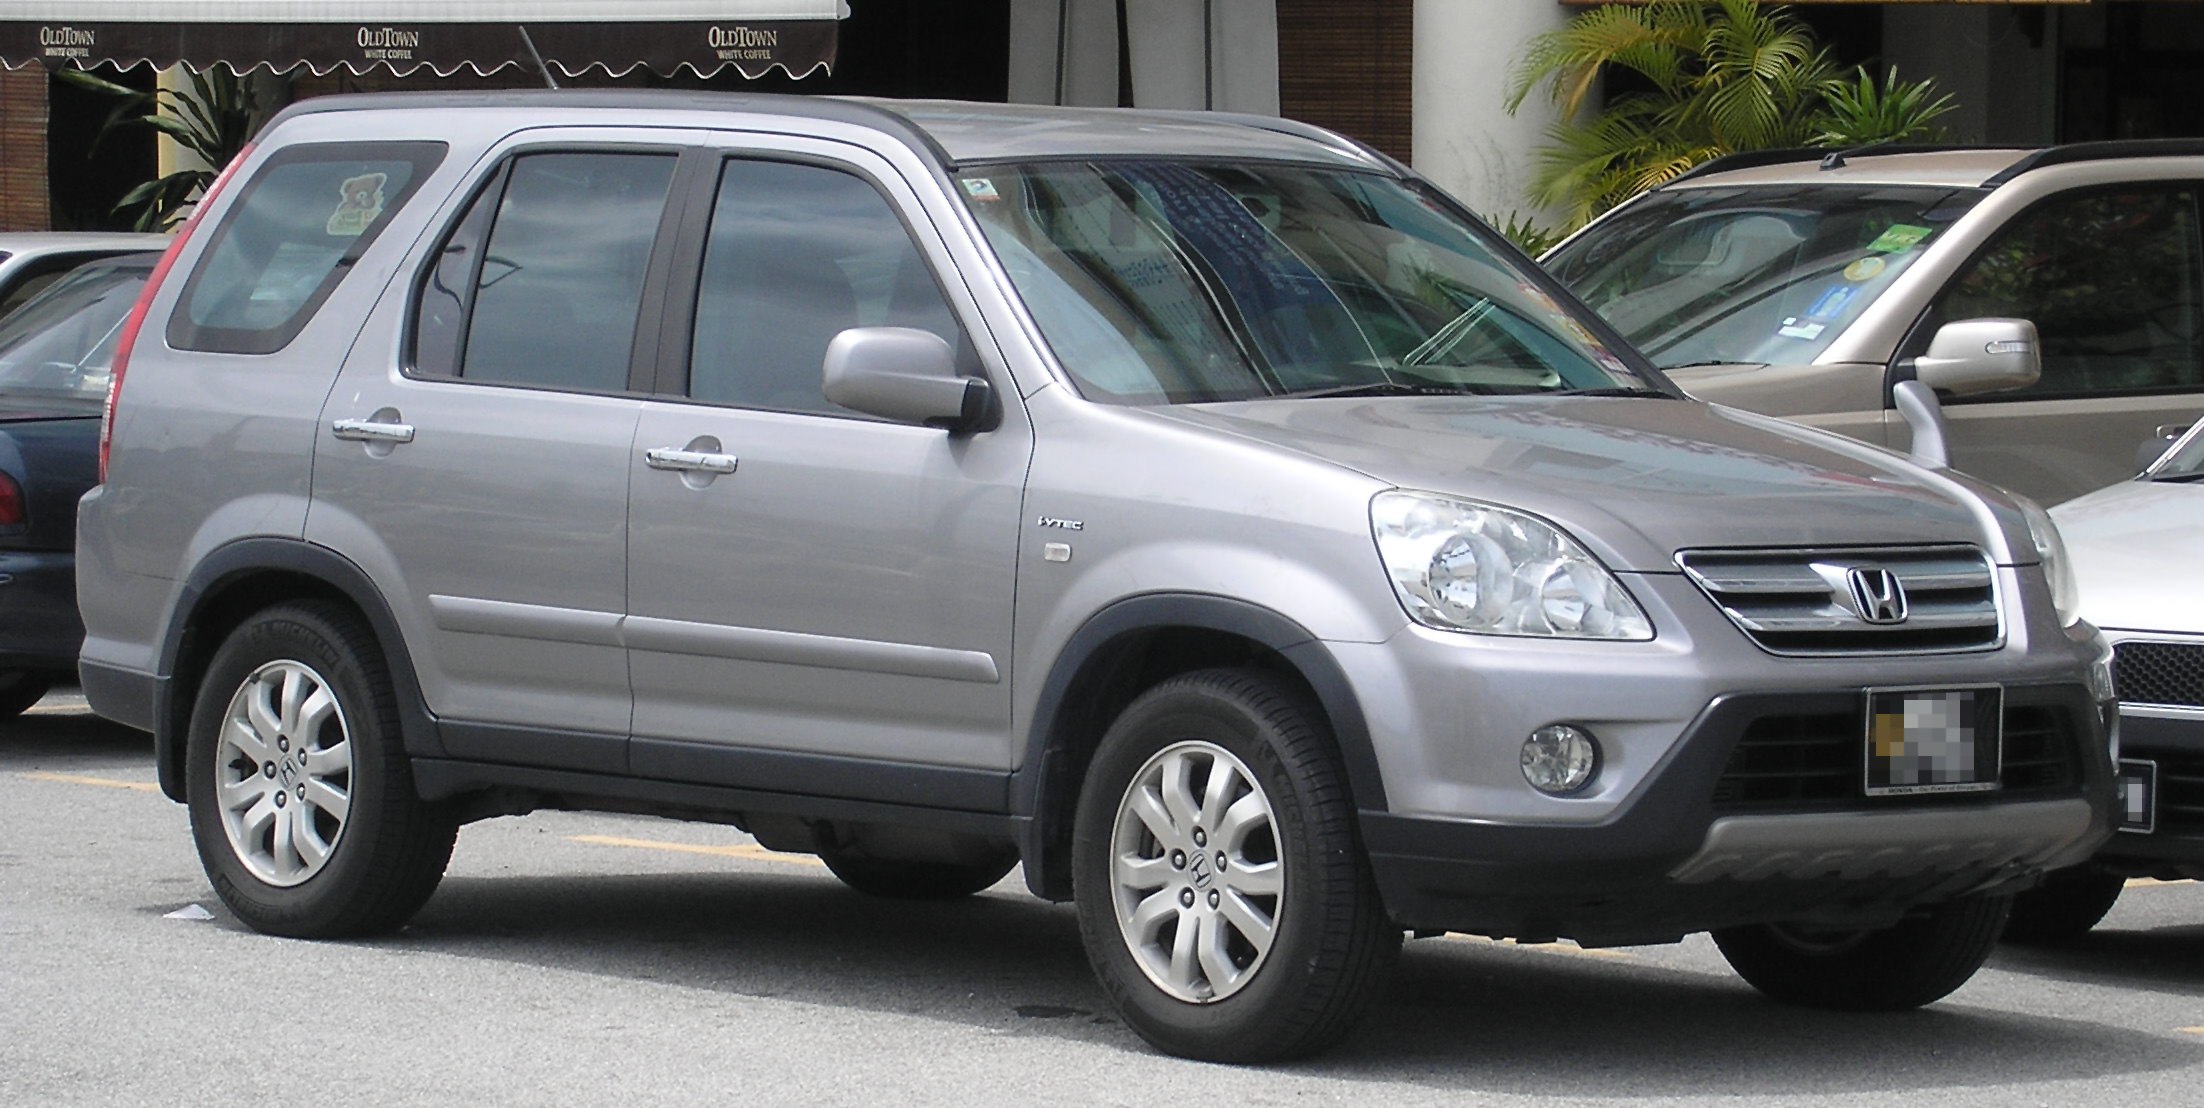 file honda cr v second generation first facelift front serdang     wikimedia commons